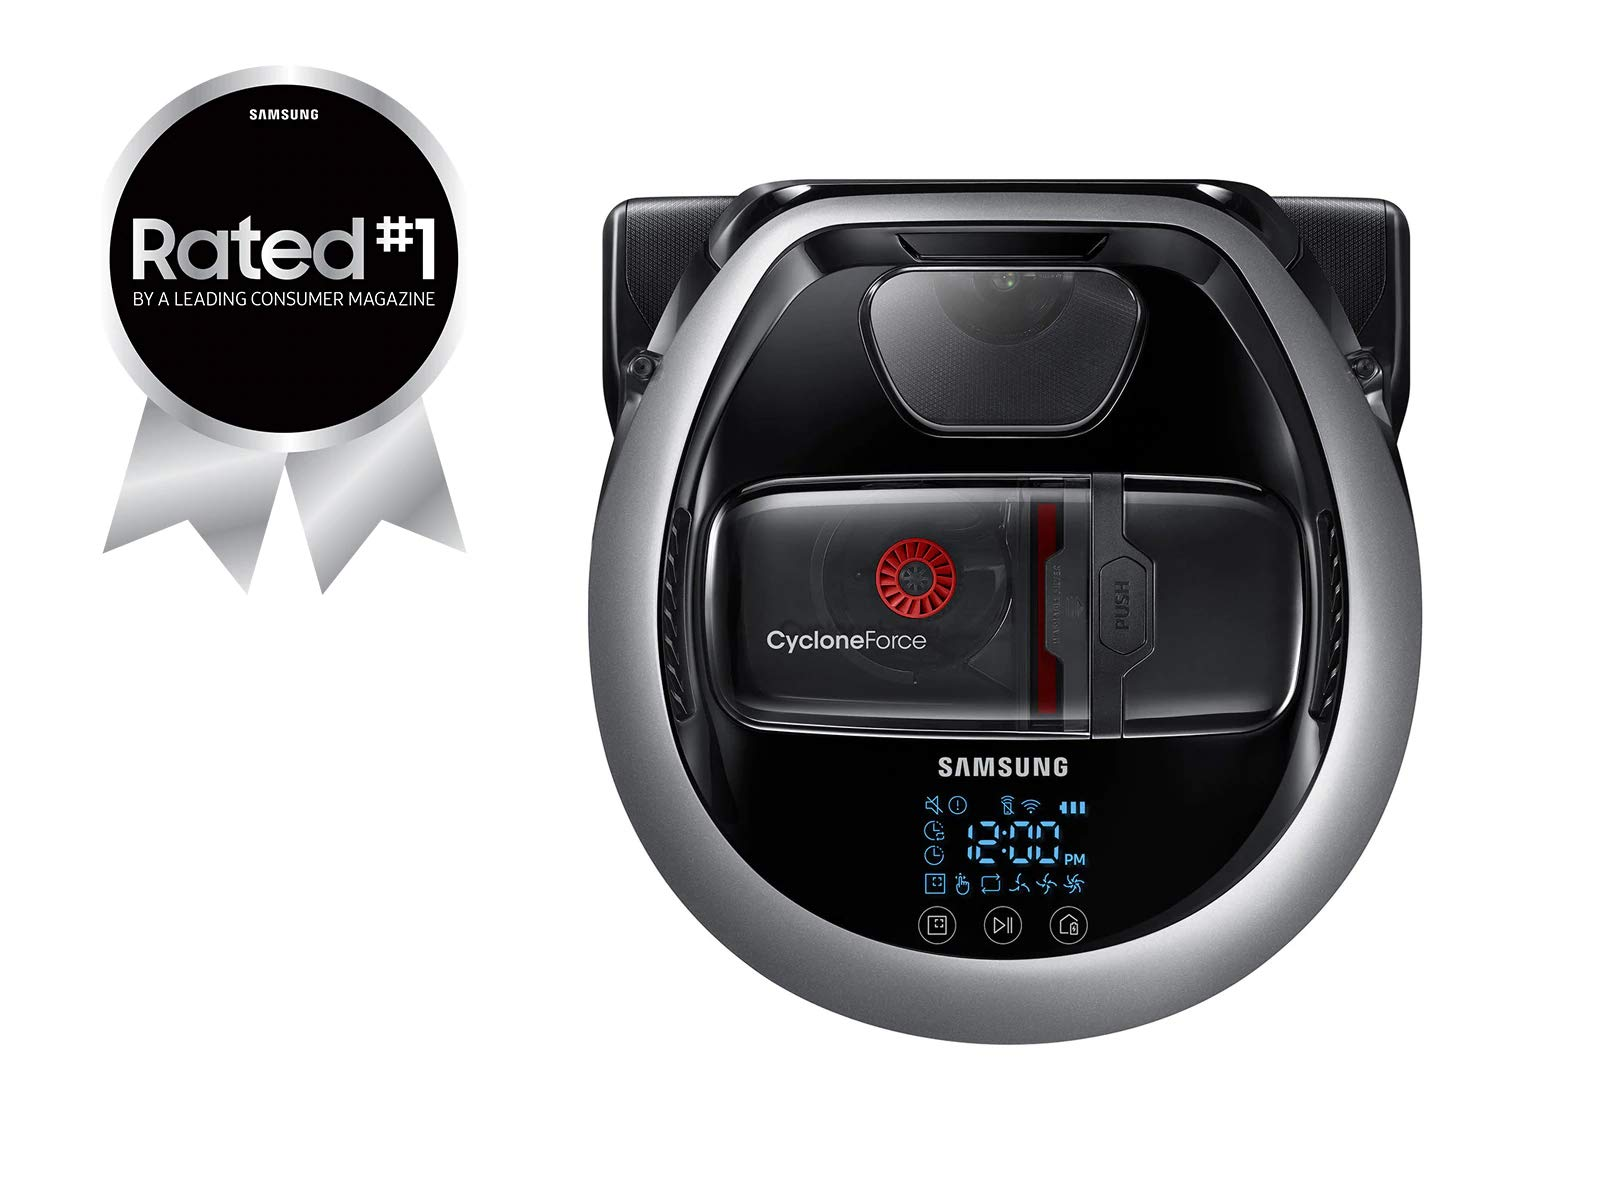 Samsung POWERbot R7065 Robot Vacuum Wi-Fi Connectivity, Ideal for Carpets, Hard Floors, and Pet Hair with 5160Pa Strong Performance, Works with Amazon Alexa and the Google Assistant by Samsung